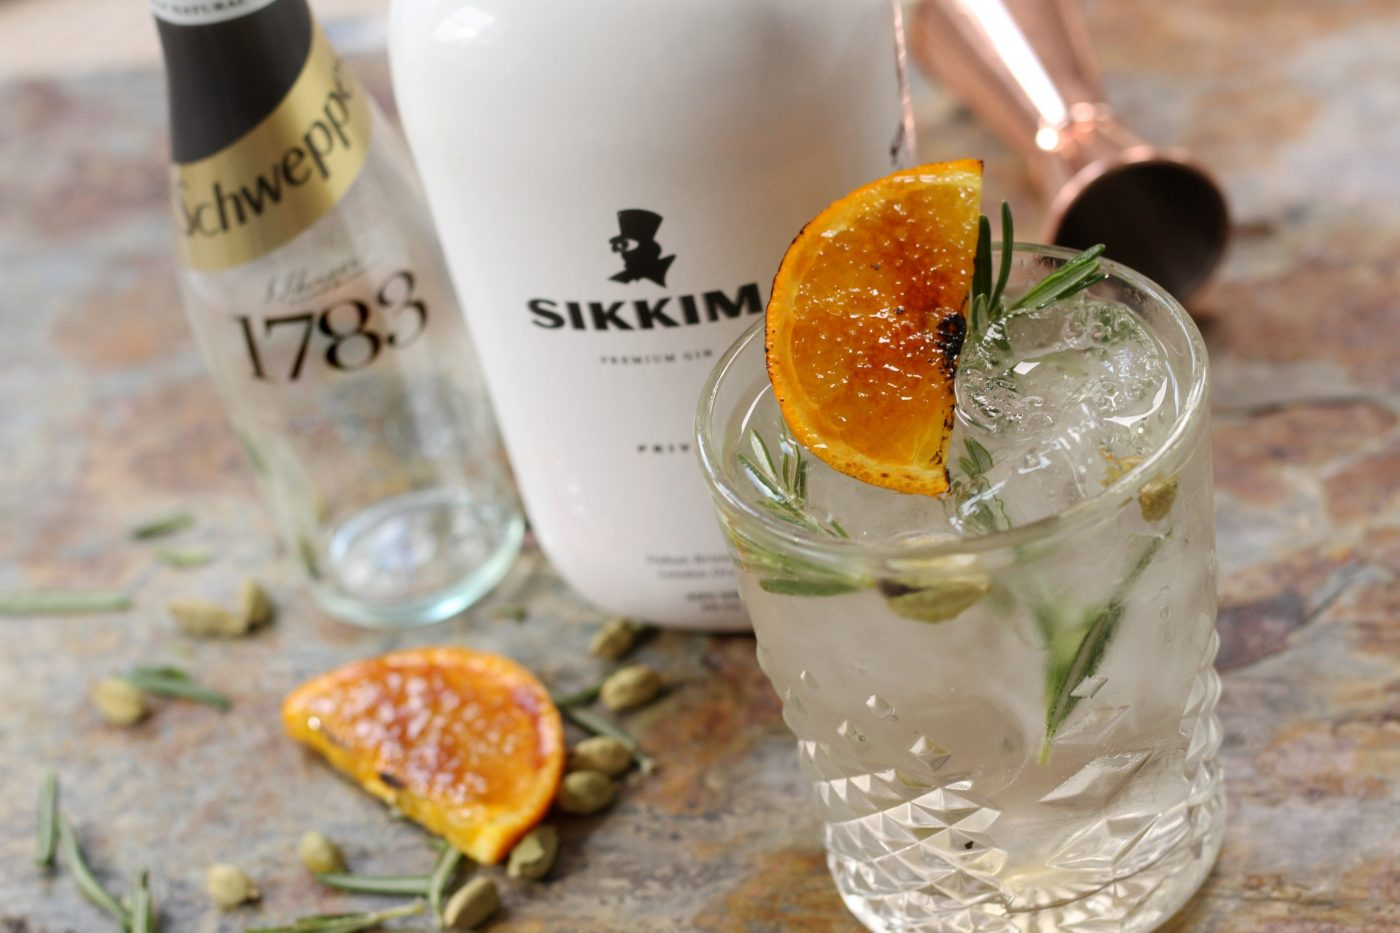 Sikkim Privee Gin and Tonic